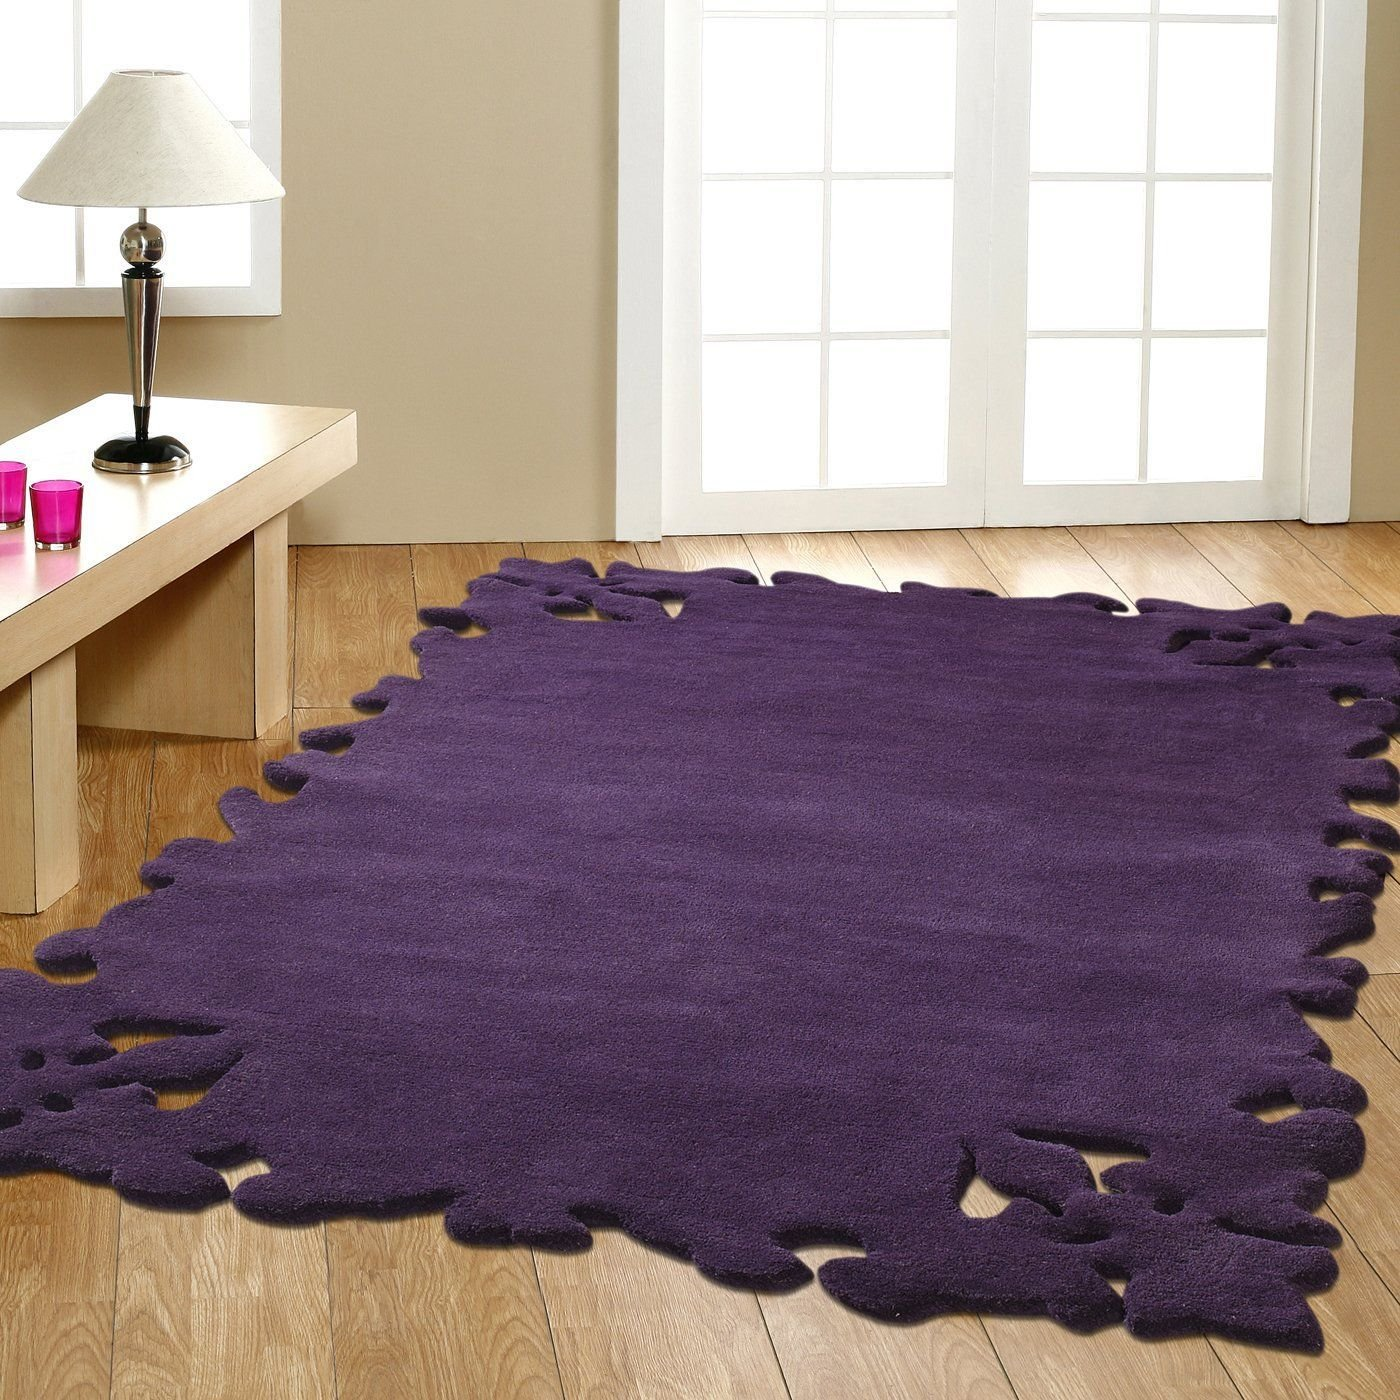 Best Modella Purple Area Rug For My Bedroom C Purple With Pictures